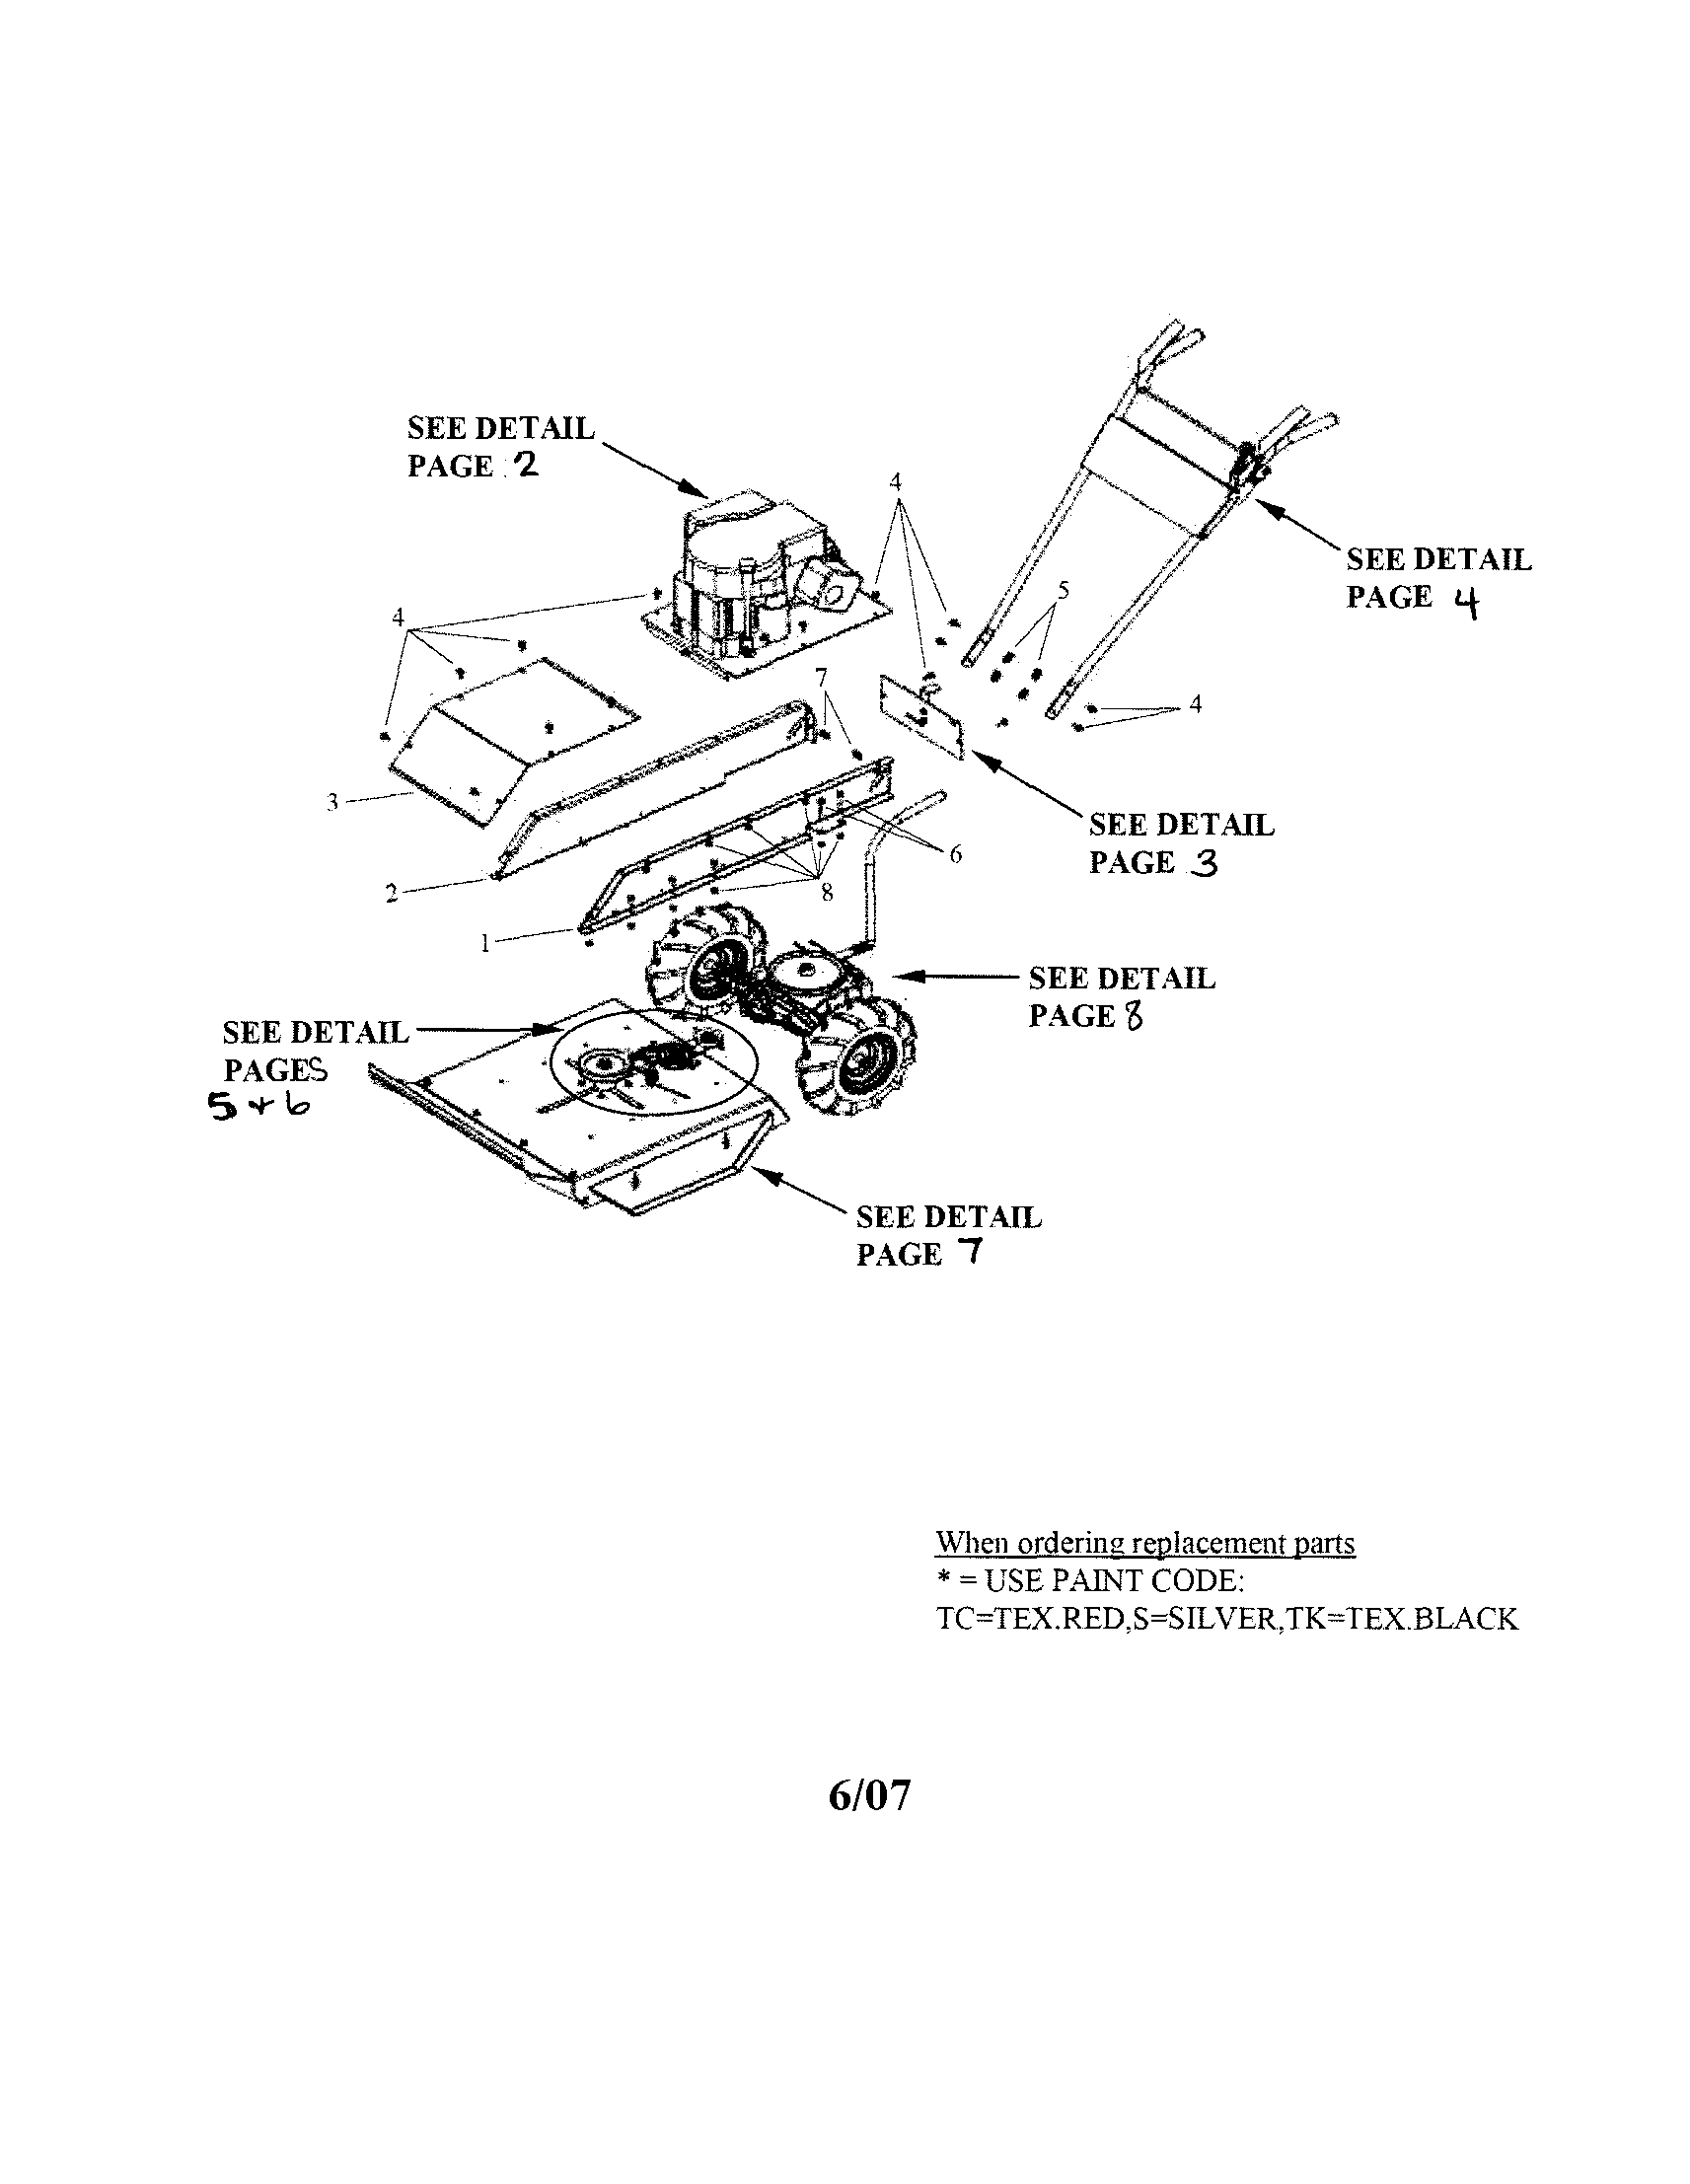 Swisher WB11524 overall assembly diagram